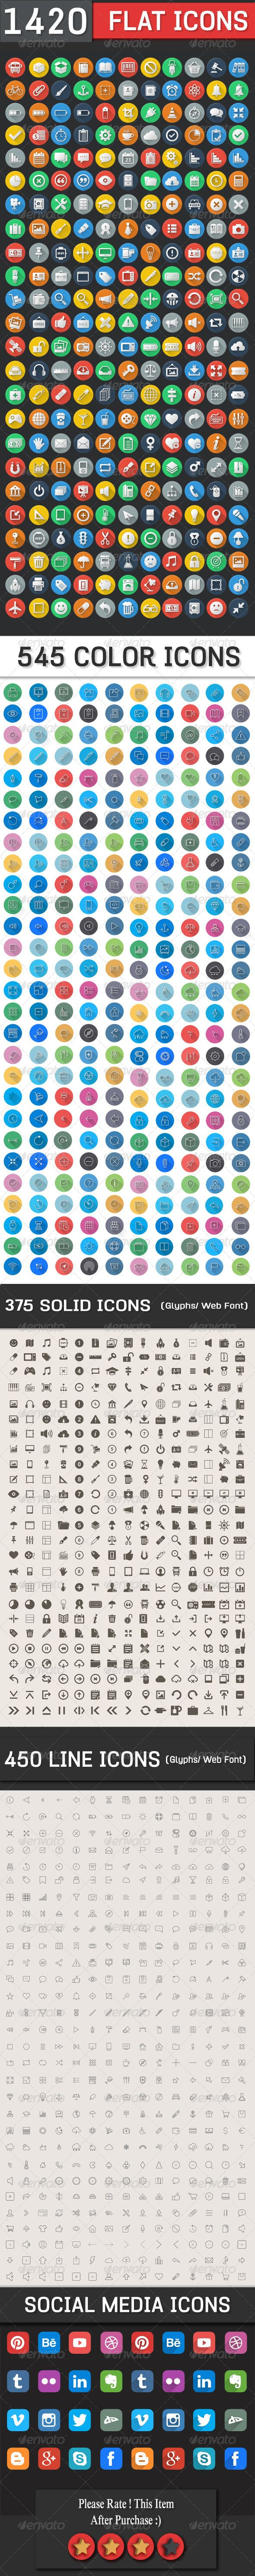 1420 Flat Icons - Colorful Icons Set Check out this #graphicriver item '1420 Flat Icons - Colorful Icons Set' http://graphicriver.net/item/1420-flat-icons-colorful-icons-set/7214124?ref=ikonogirl #new #colorful #flat #icons #icon #big #set